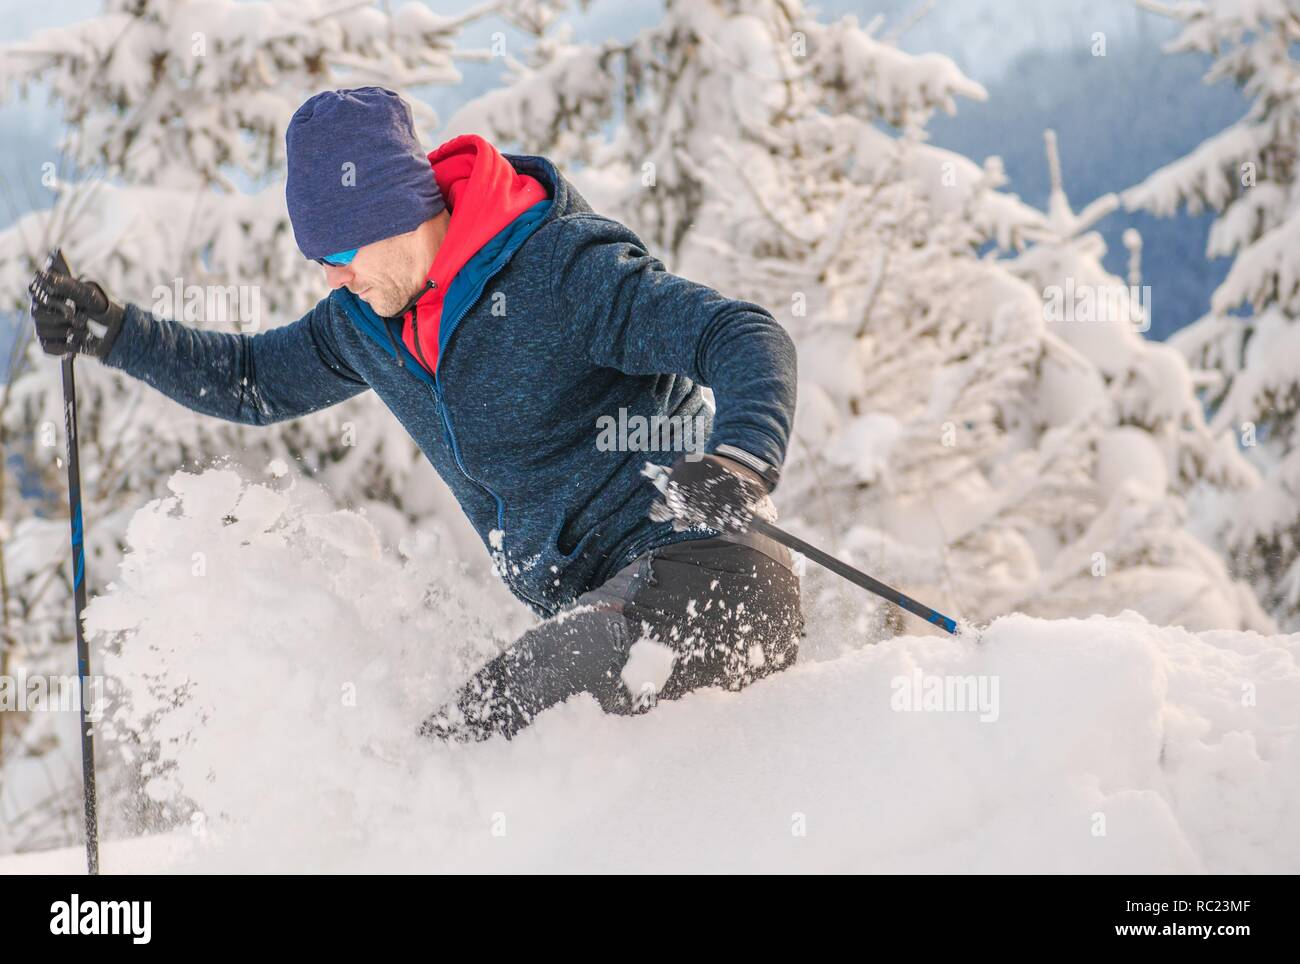 Backcountry Skier Ride in Heavy Snow. Off Piste Ski. Winter Sports Concept. - Stock Image